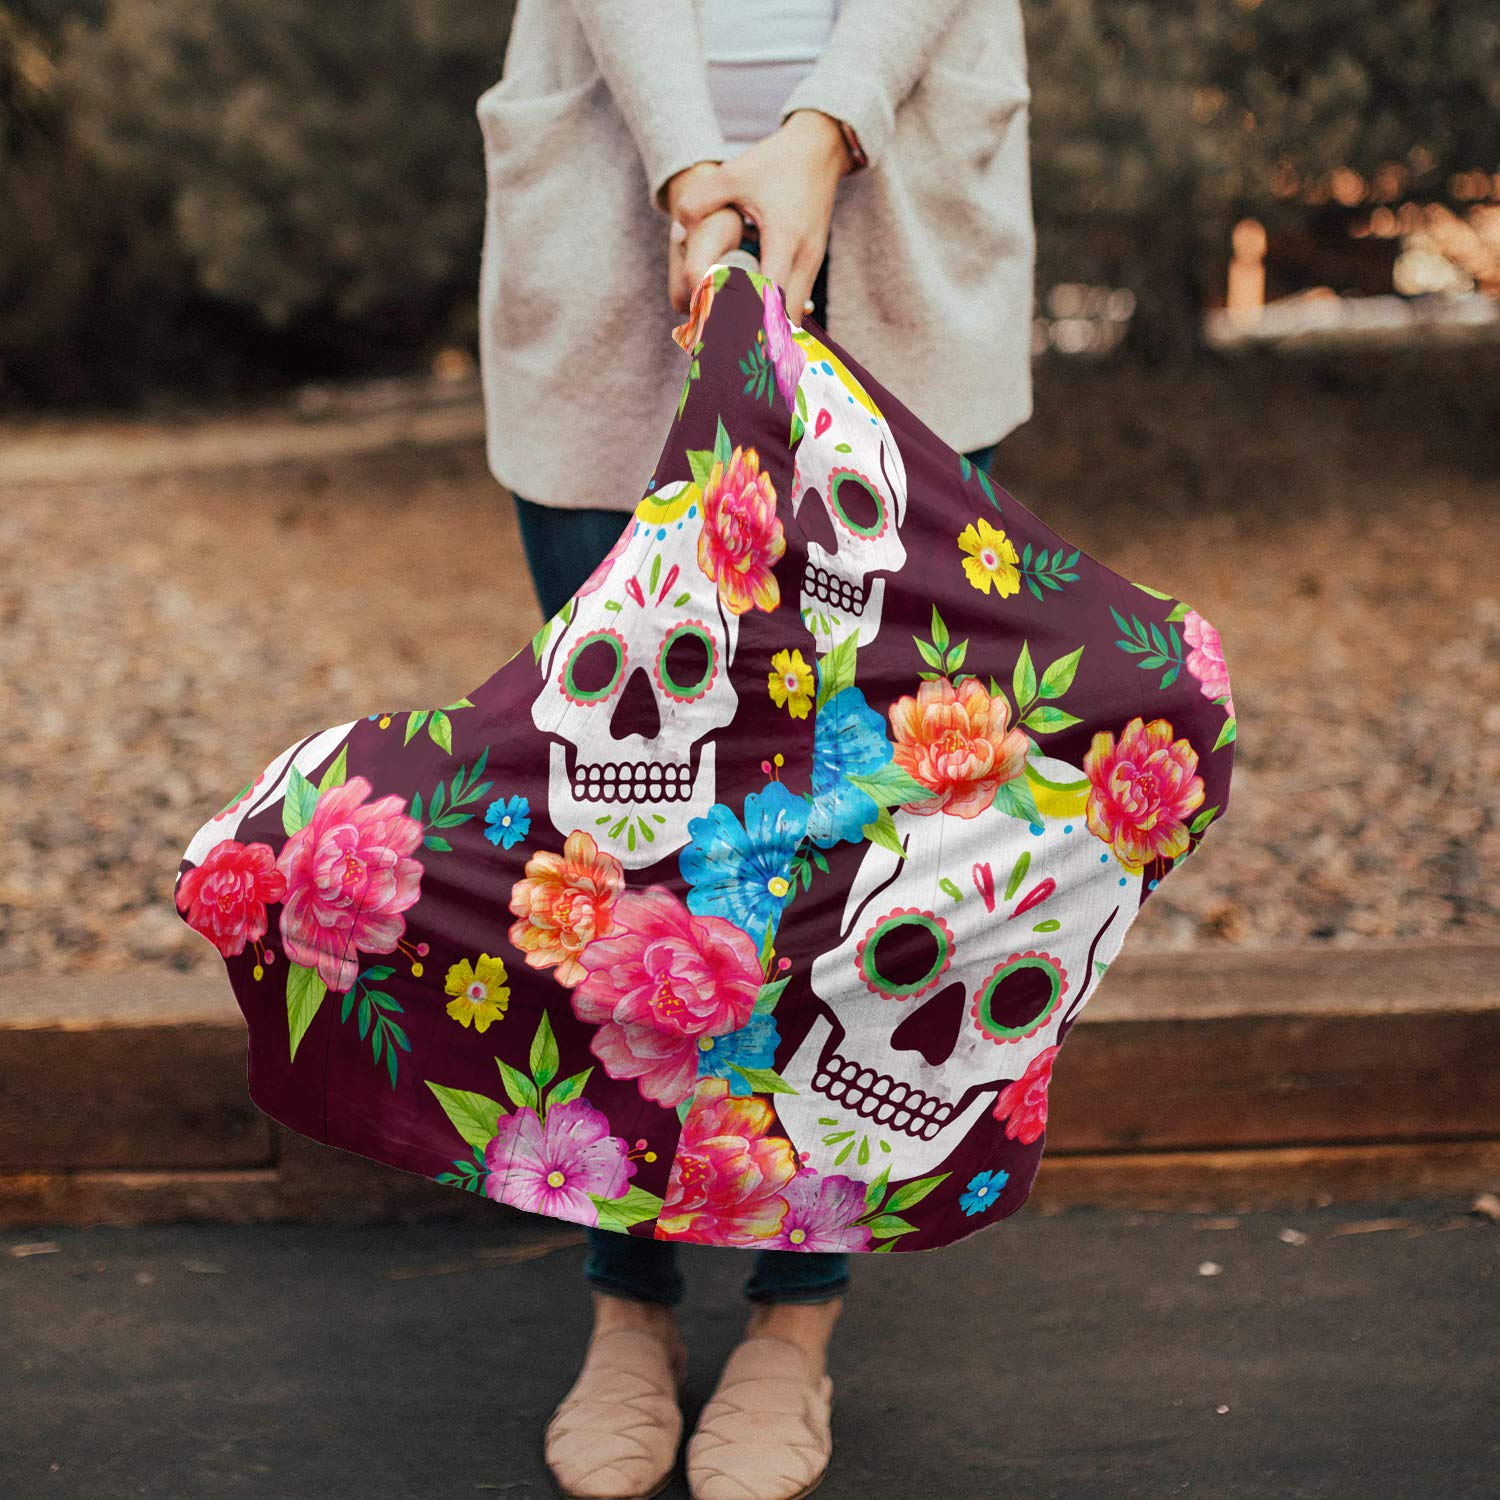 Baby Car Seat Covers Sugar Skull, Nursing Cover Breastfeeding Scarf/Shawl, Infant Carseat Canopy, Stretchy Soft Breathable Multi-use Cover Ups, Skeleton Flowers Rose Watercolor Colorful Floral